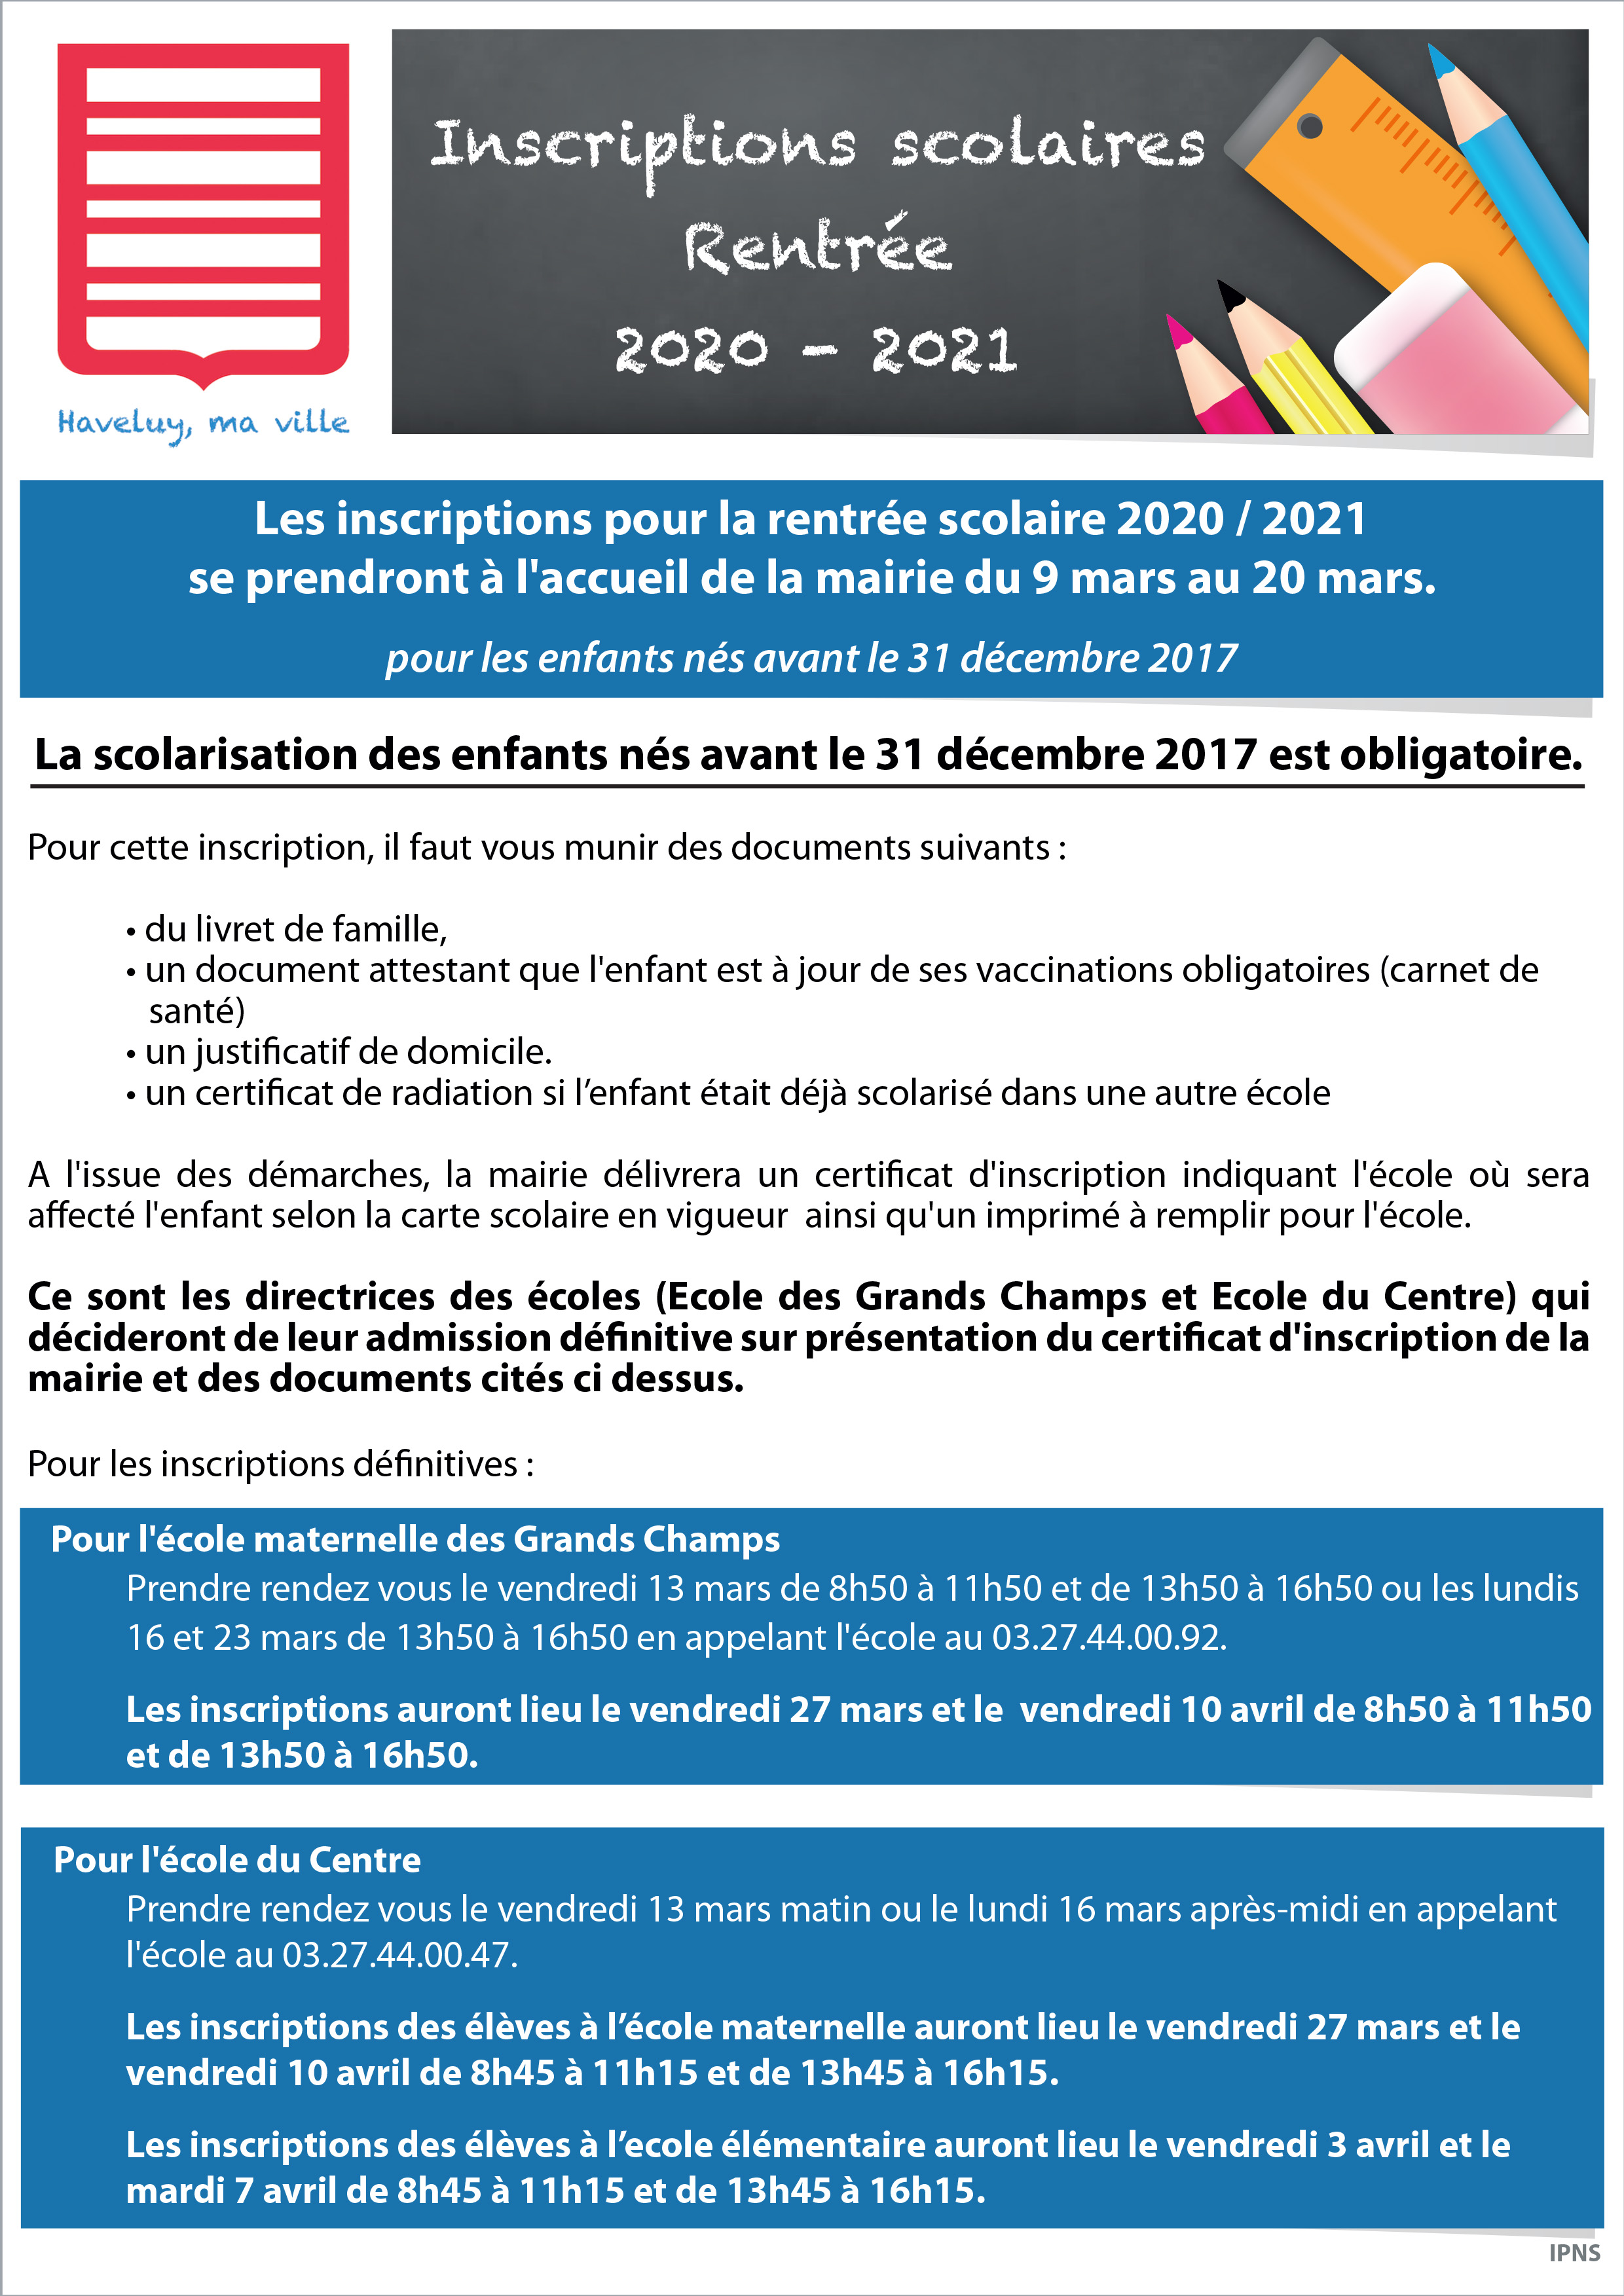 inscriptions scolaires rentree 2020 2021